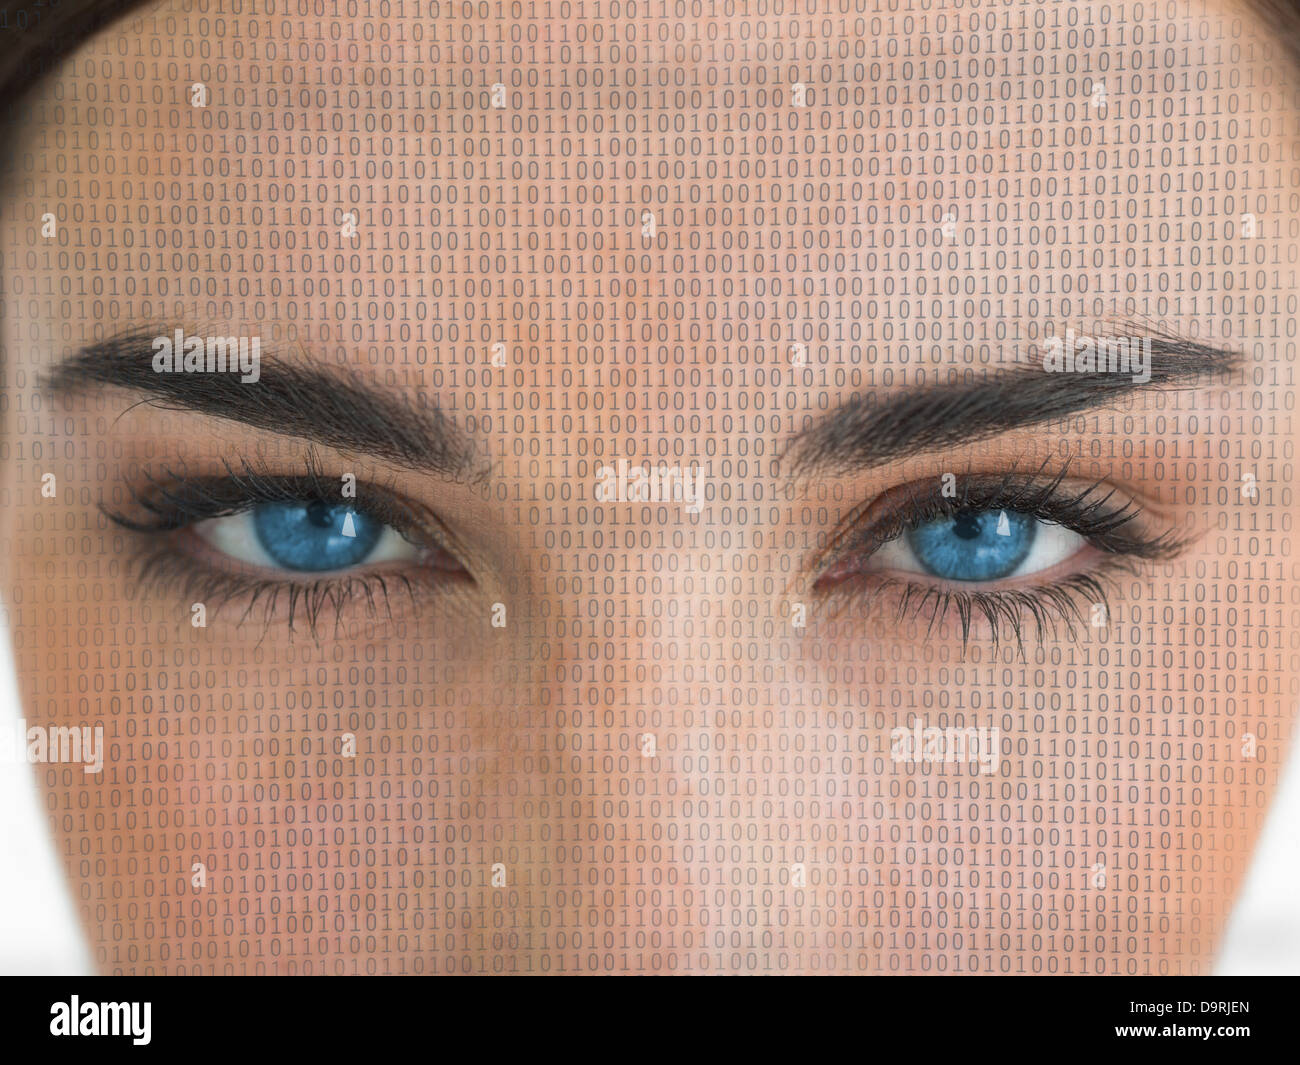 Attractive blue eyed woman with binary coding on face - Stock Image